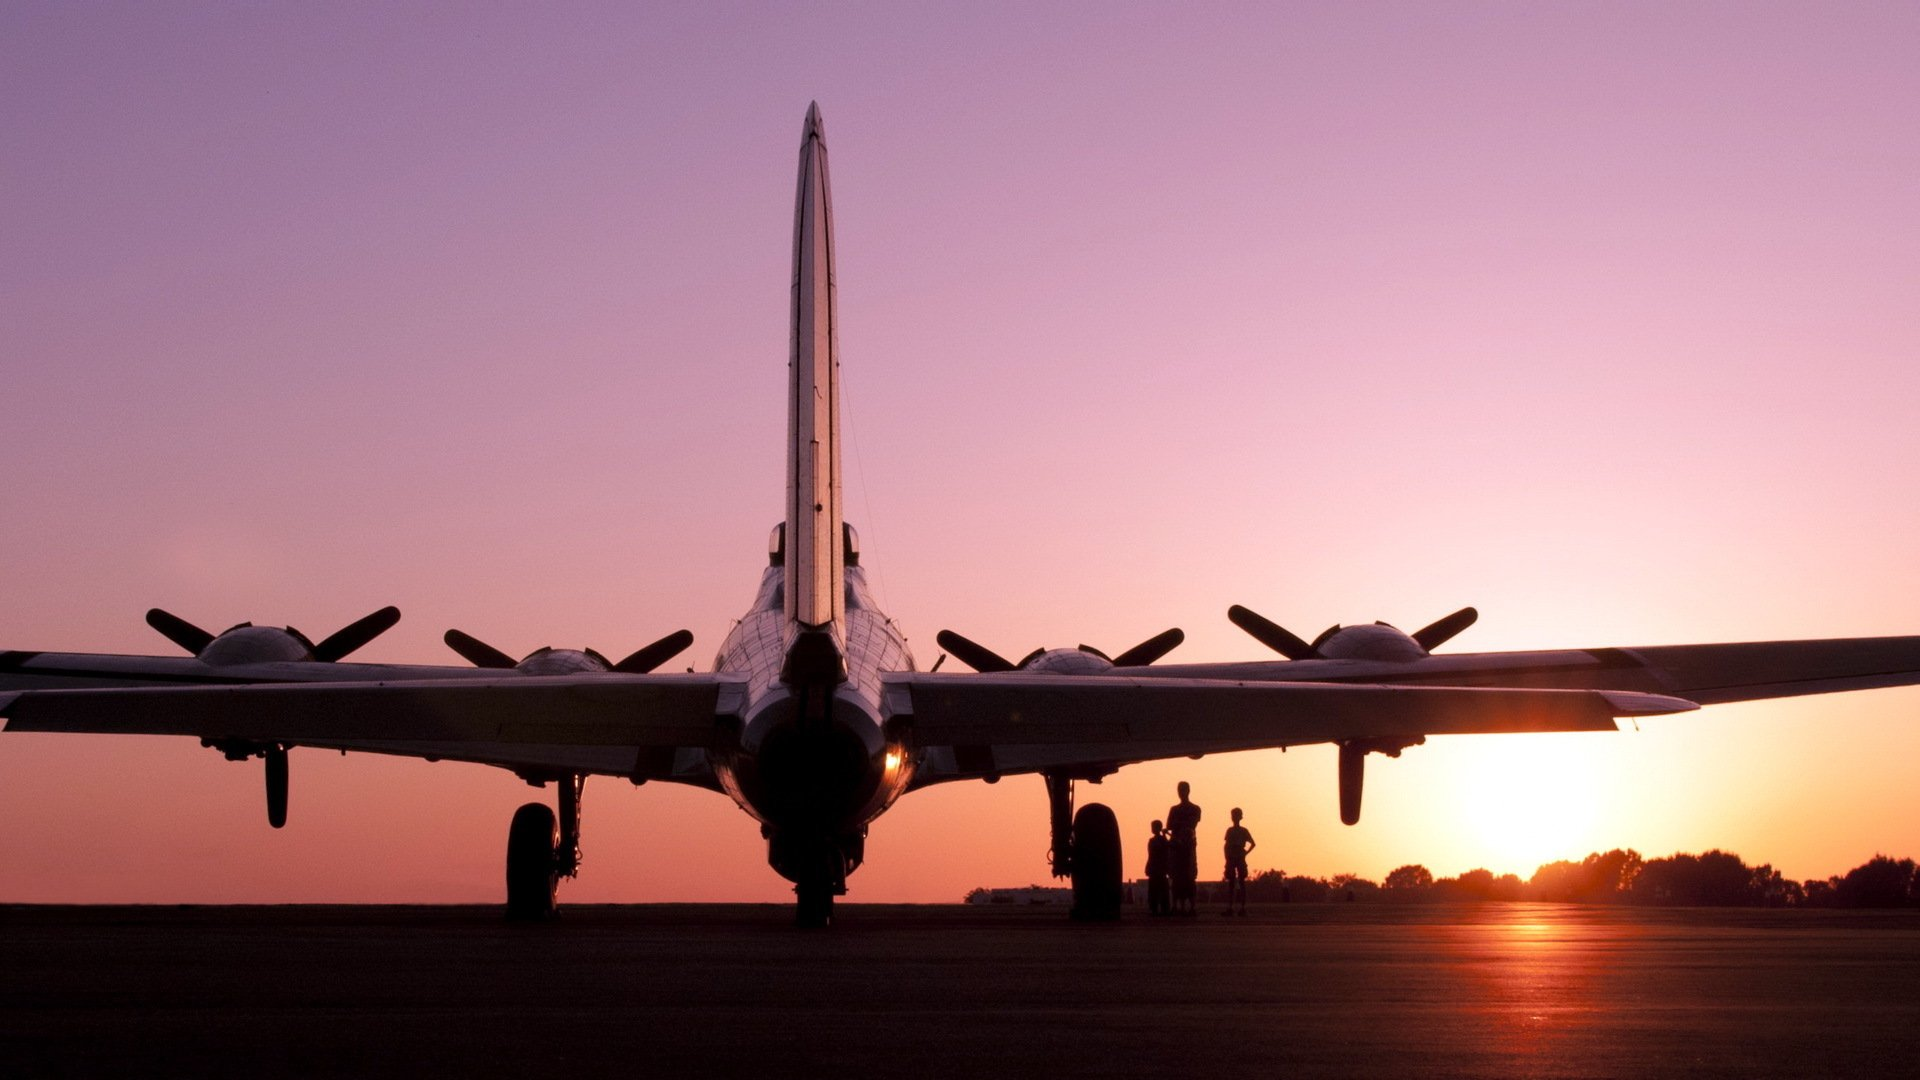 Vintage Airplane Full HD Pics Wallpapers 5931   Amazing Wallpaperz 1920x1080